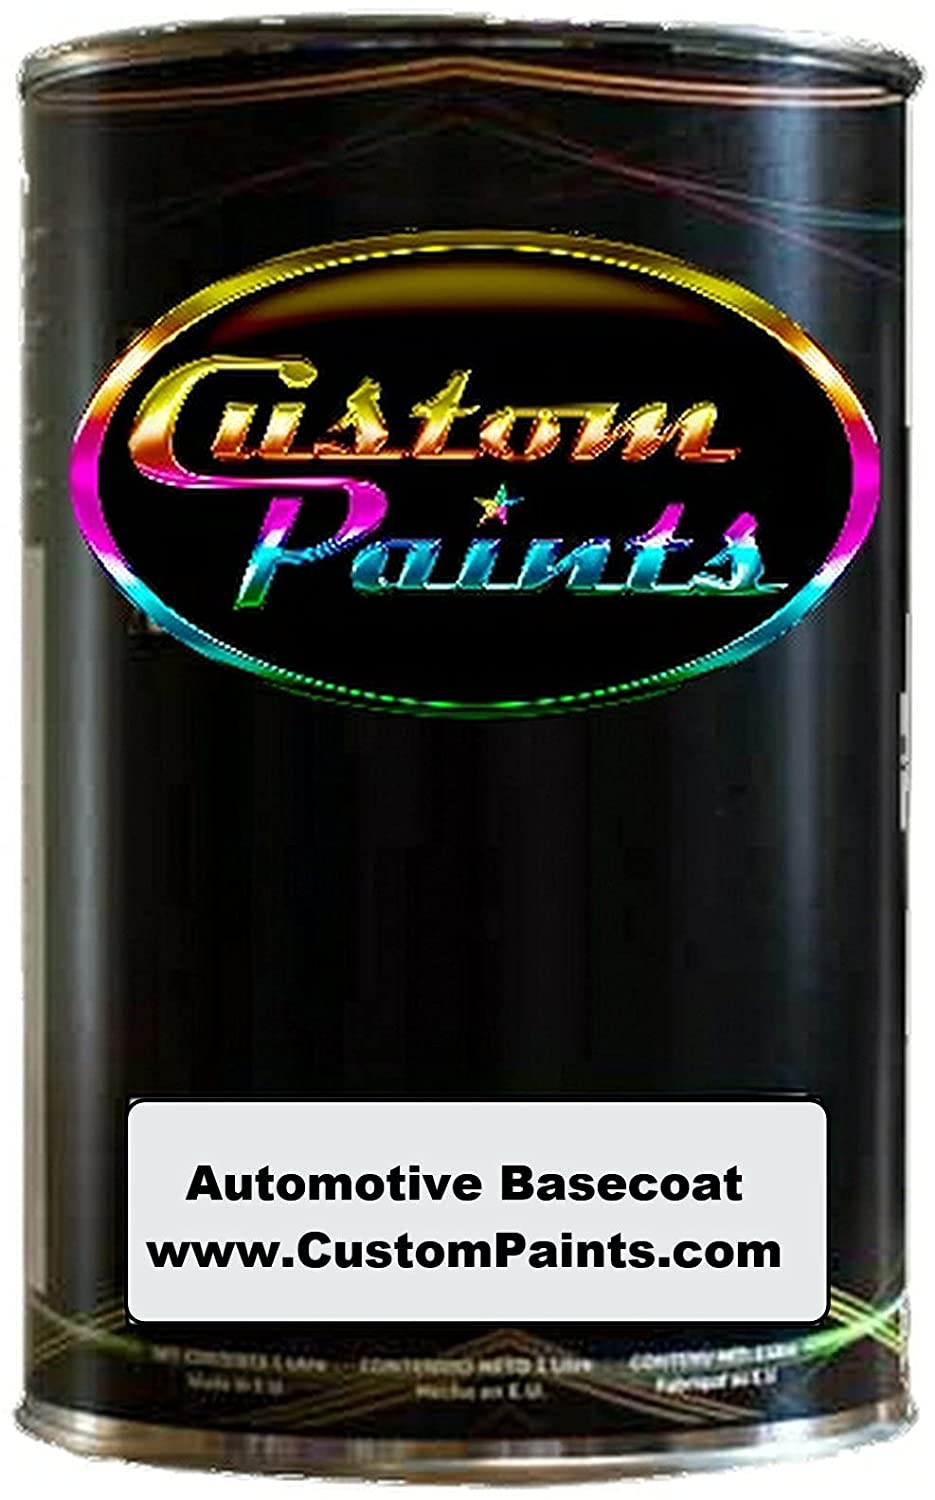 Auto paint Orange Metallic Selling Phoenix Mall - Paint Compatible with YR551M H Code